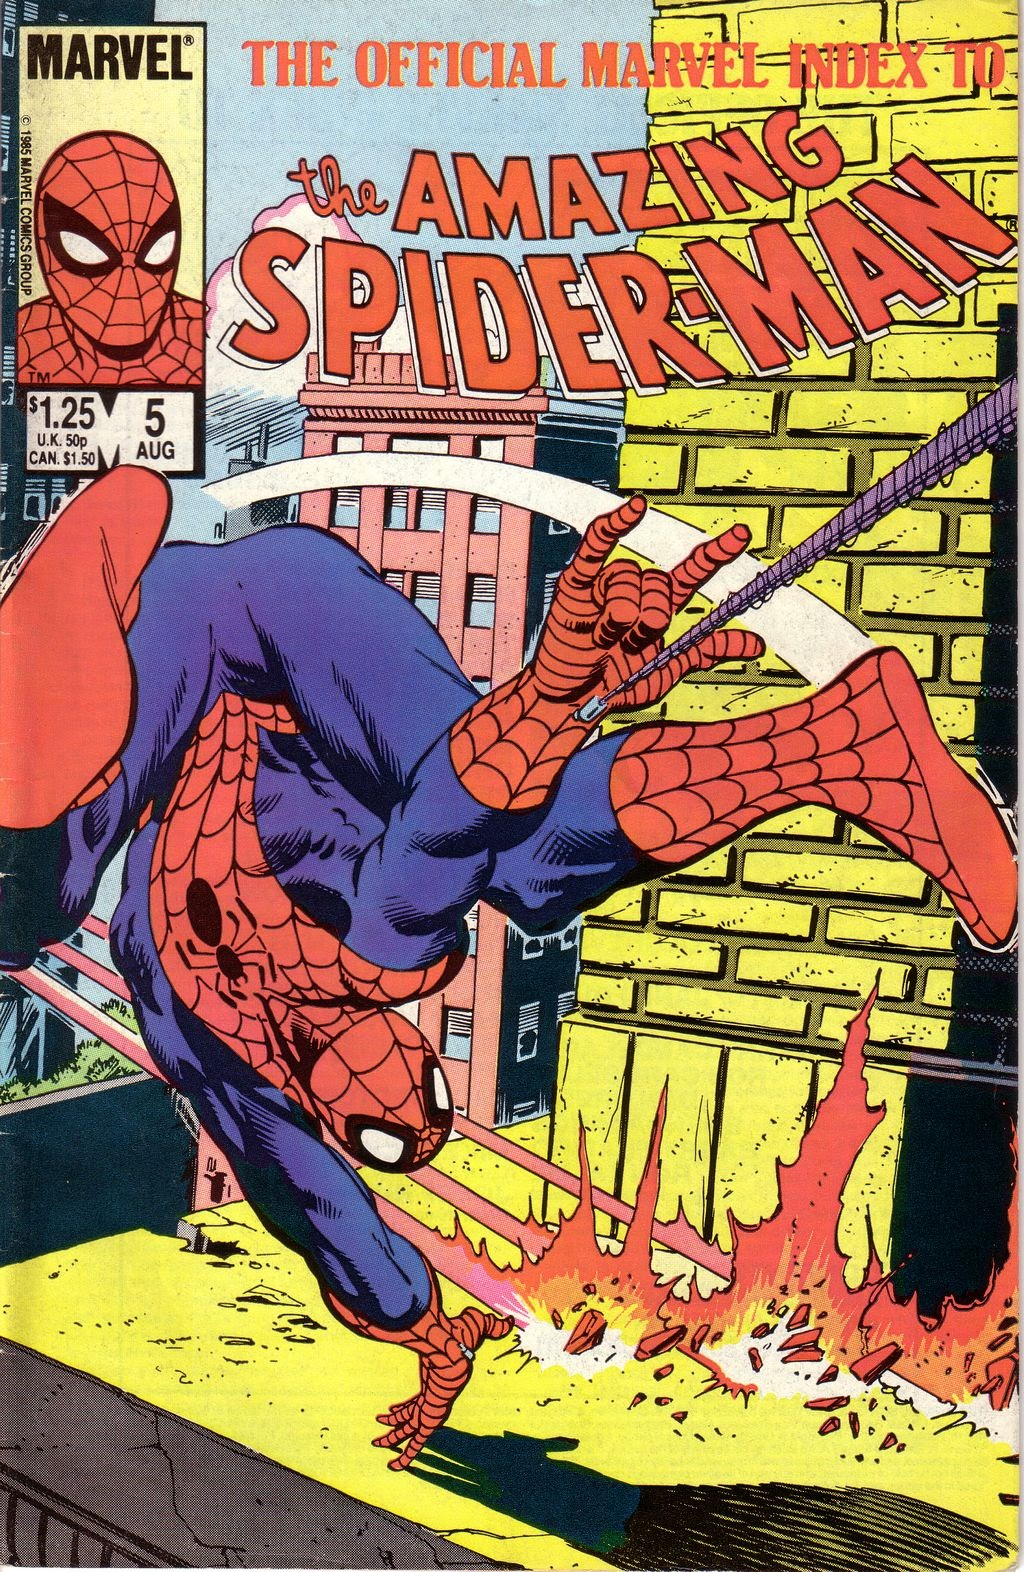 The Official Marvel Index to The Amazing Spider-Man 5 Page 1